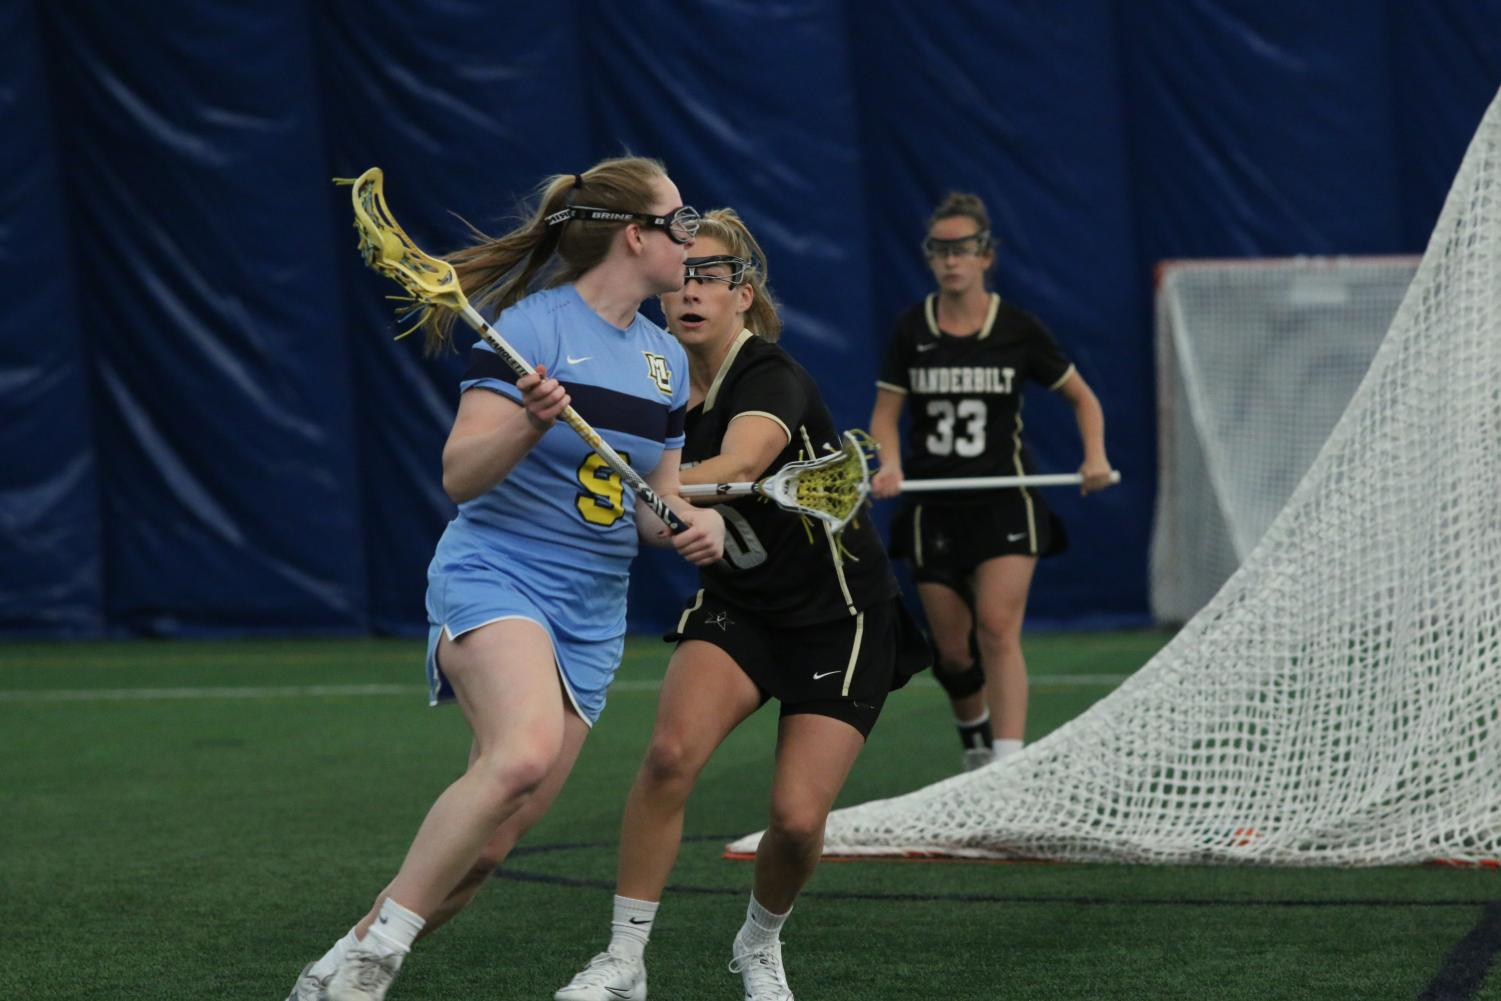 Marquette women's lacrosse was undefeated in the Valley Fields dome until the loss to Denver on Wednesday.